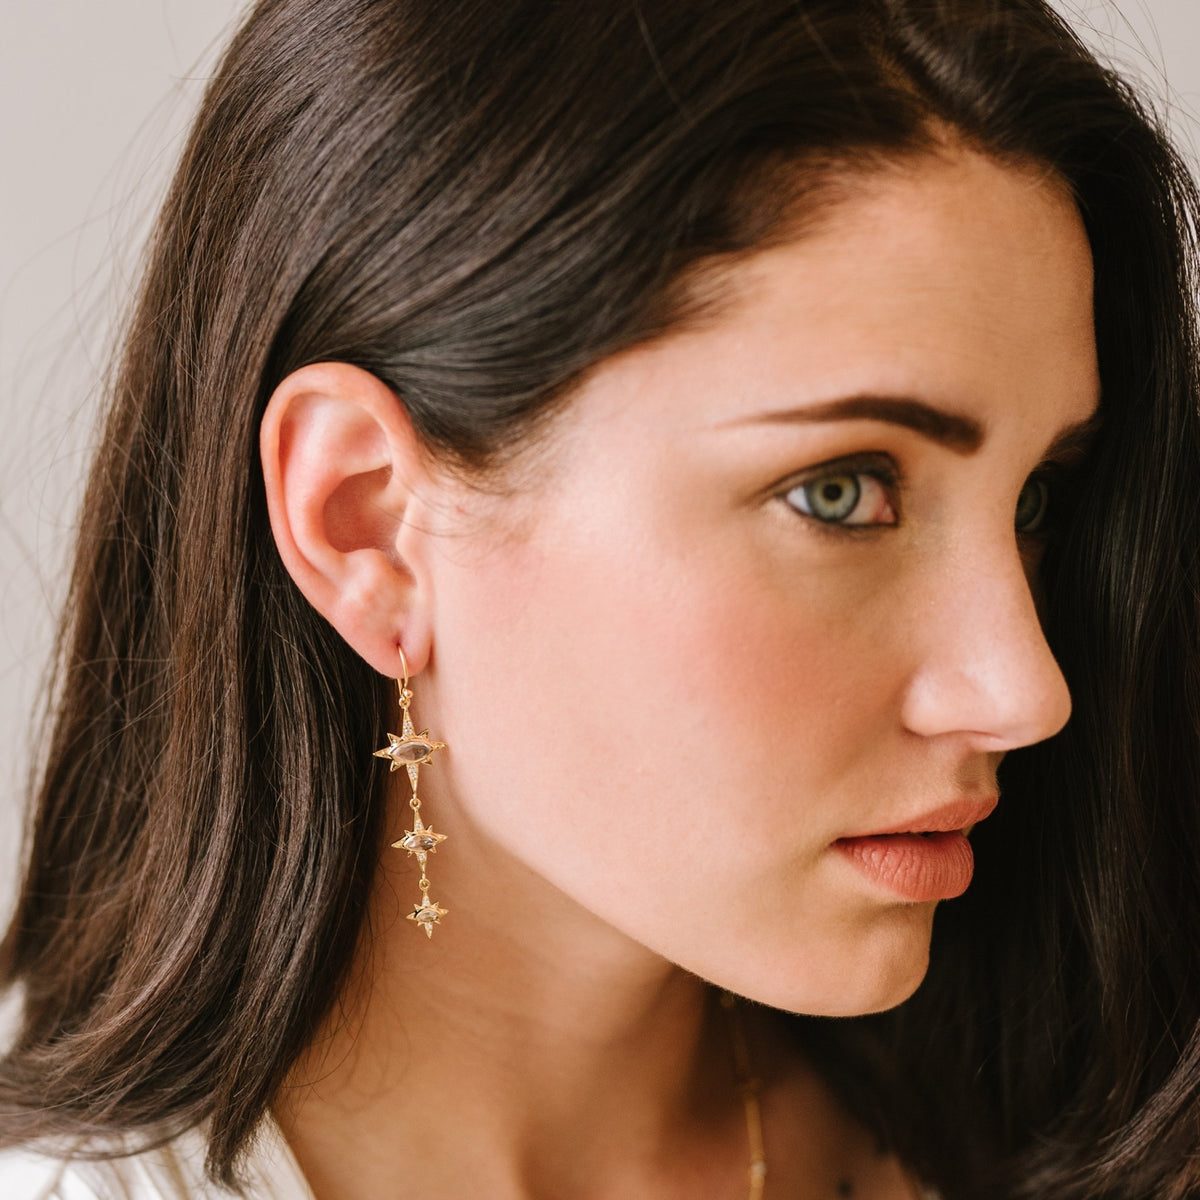 IMAGINE DROP TRIO EARRINGS - WHITE TOPAZ, CUBIC ZIRCONIA & GOLD - SO PRETTY CARA COTTER